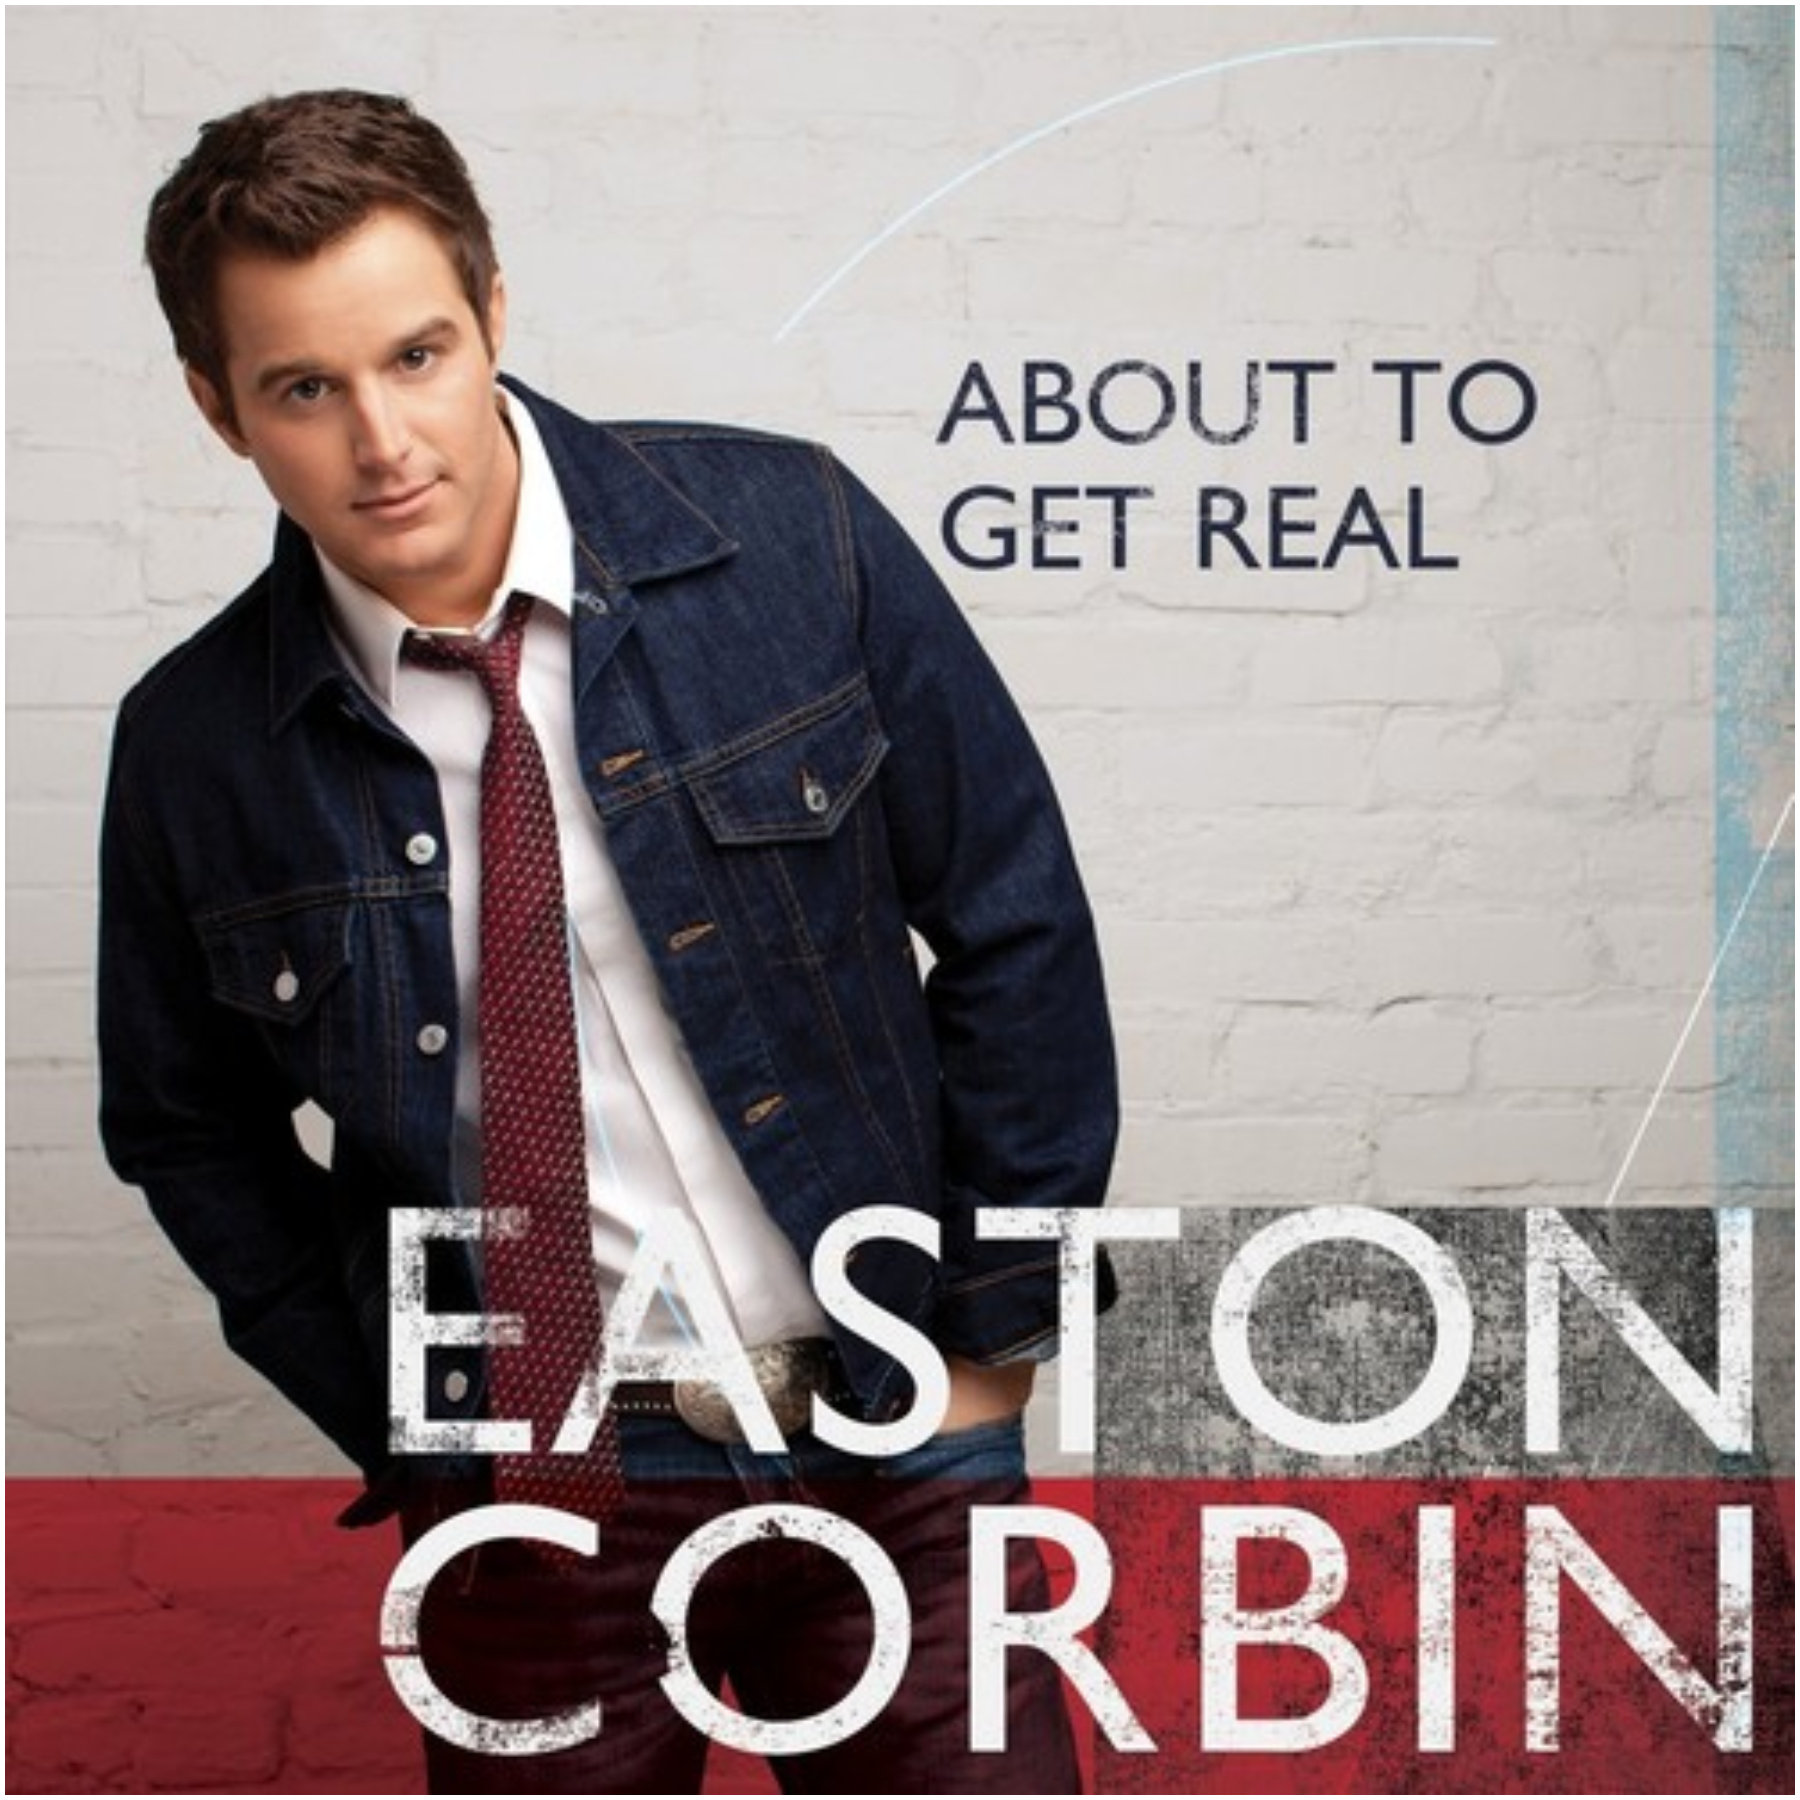 EastonCorbin_AboutToGetReal.jpg